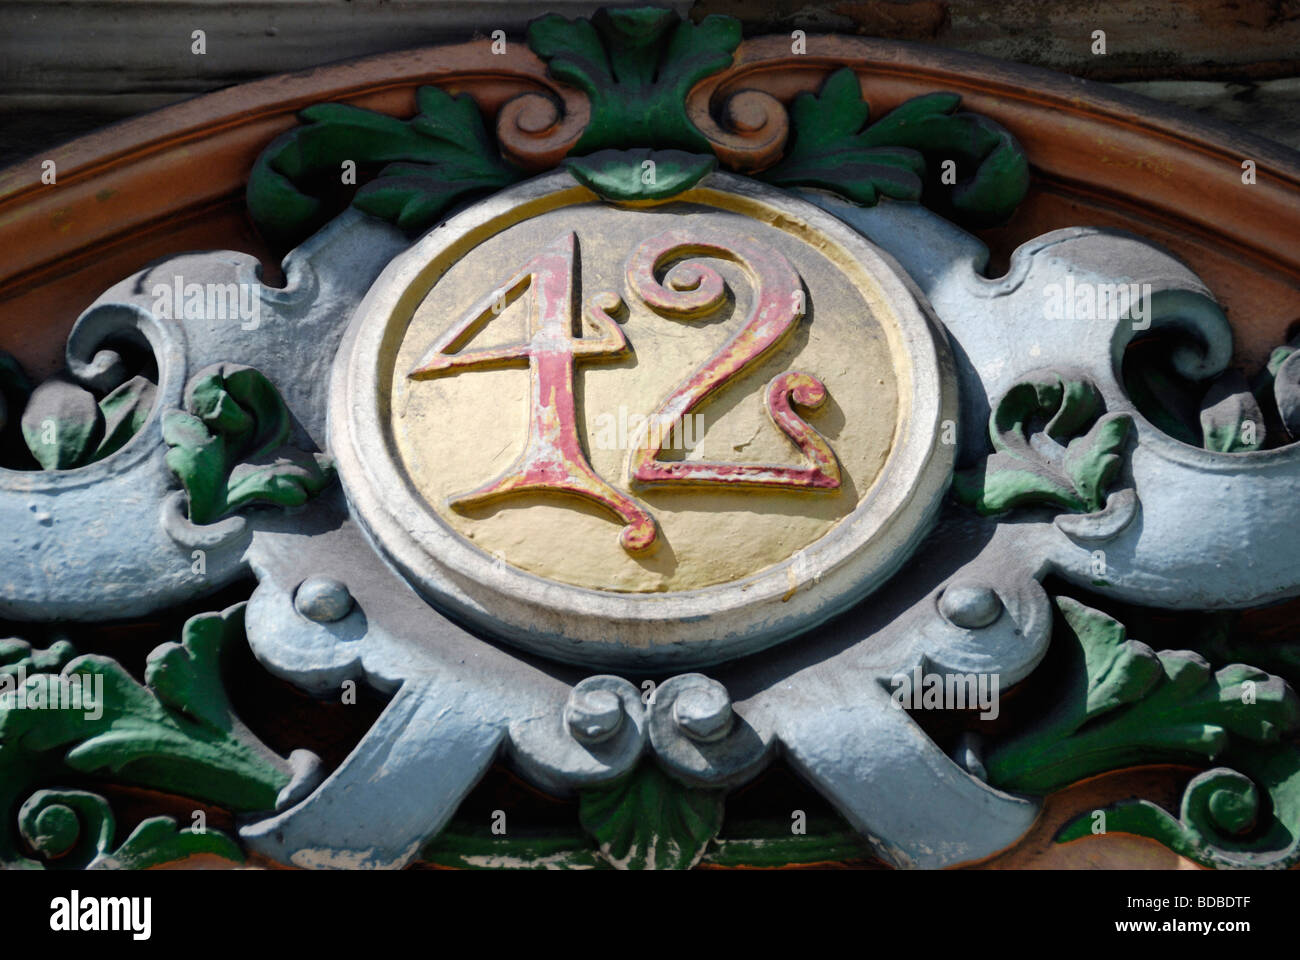 Close up of decorative no 42 street number above entrance to Victorian building London England - Stock Image